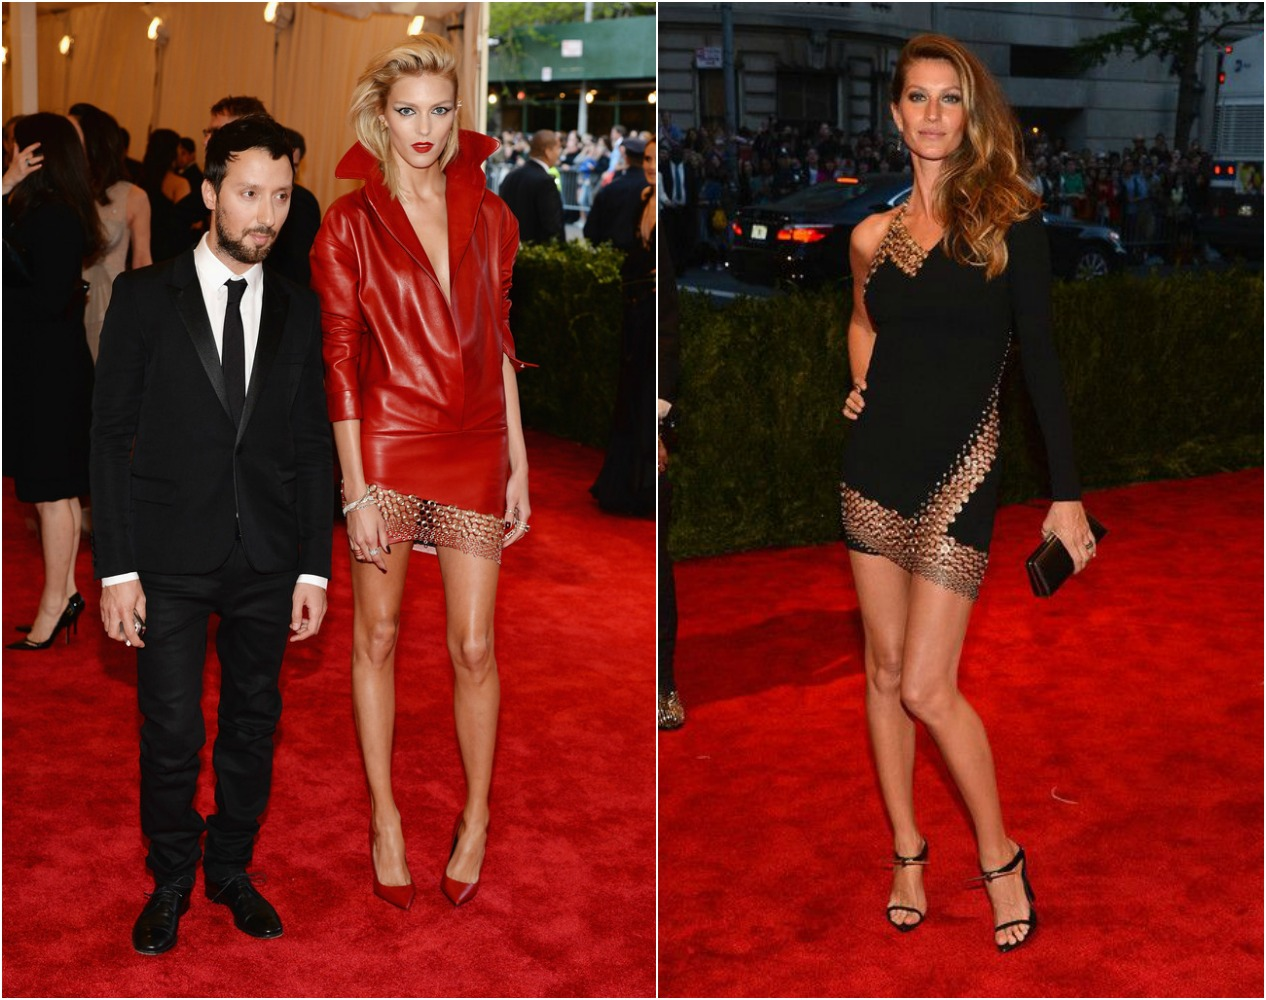 (左)Anja Rubik 與 Anthony Vaccarello 2014 Met Gala;(右)Gisele Bundchen Met Gala 2013